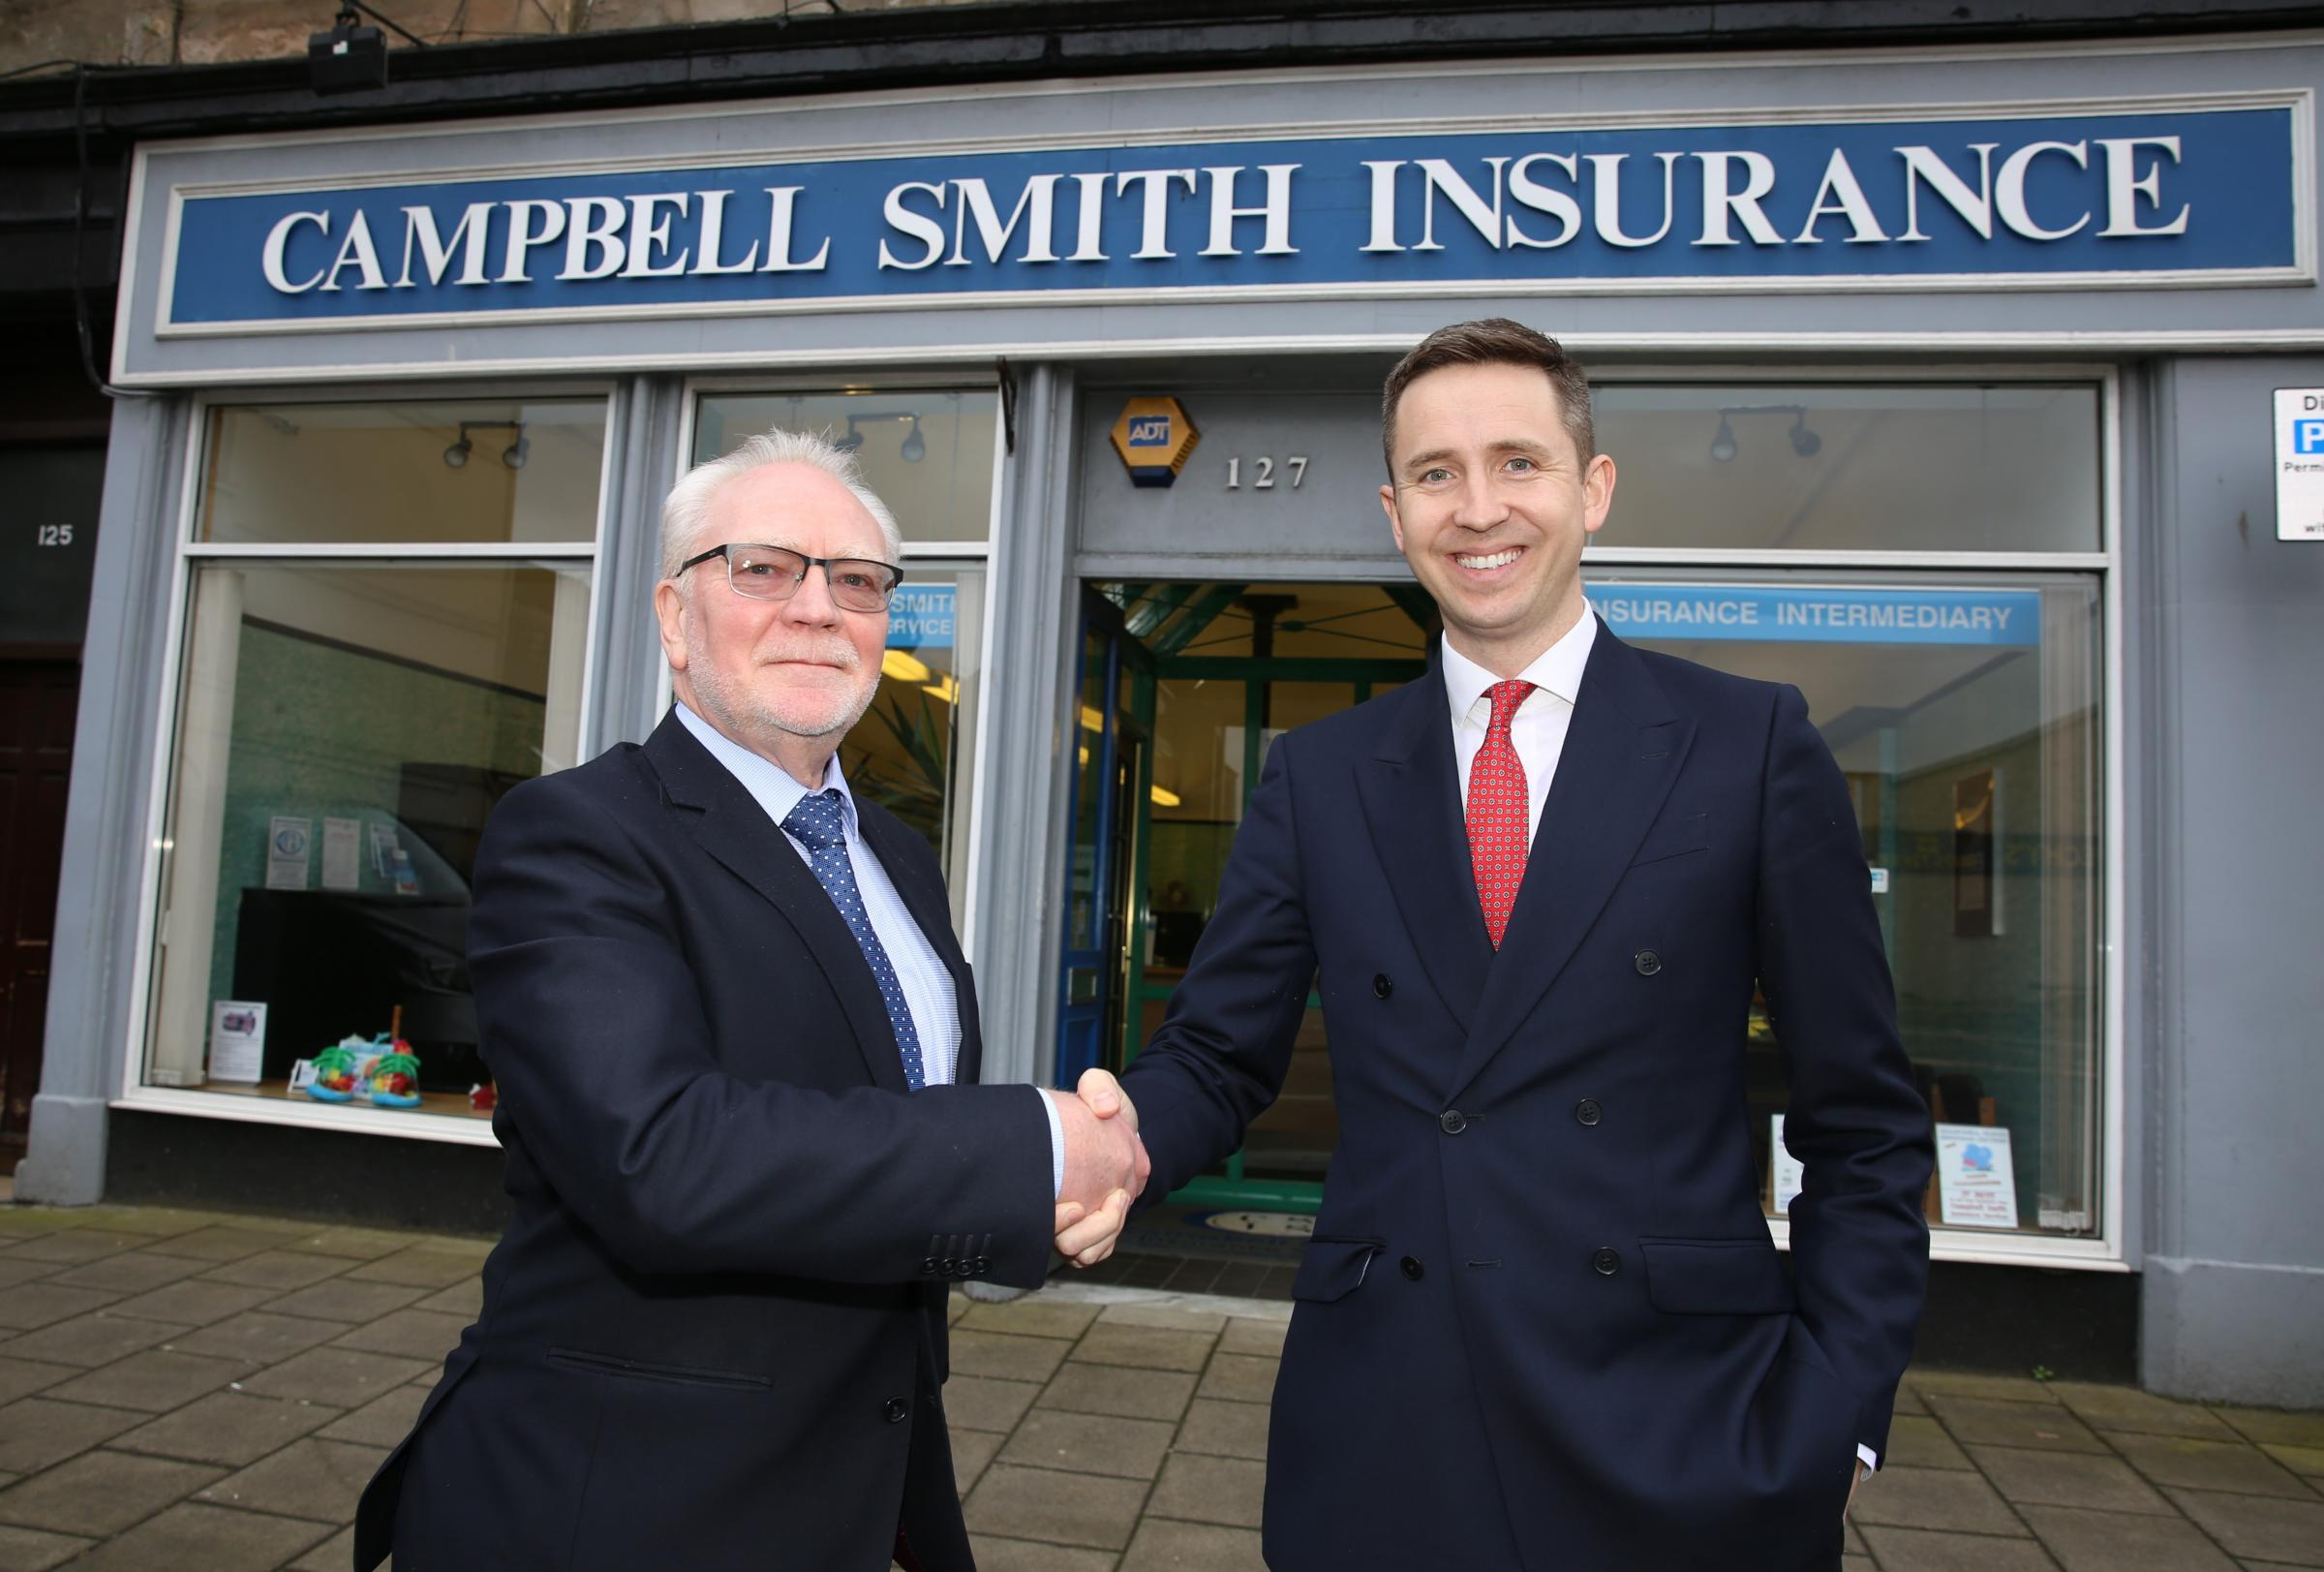 Campbell Smith Insurance changes hands. Founder Willie Smith with Andrew Weir, managing director of new owners Greenwood Moreland.